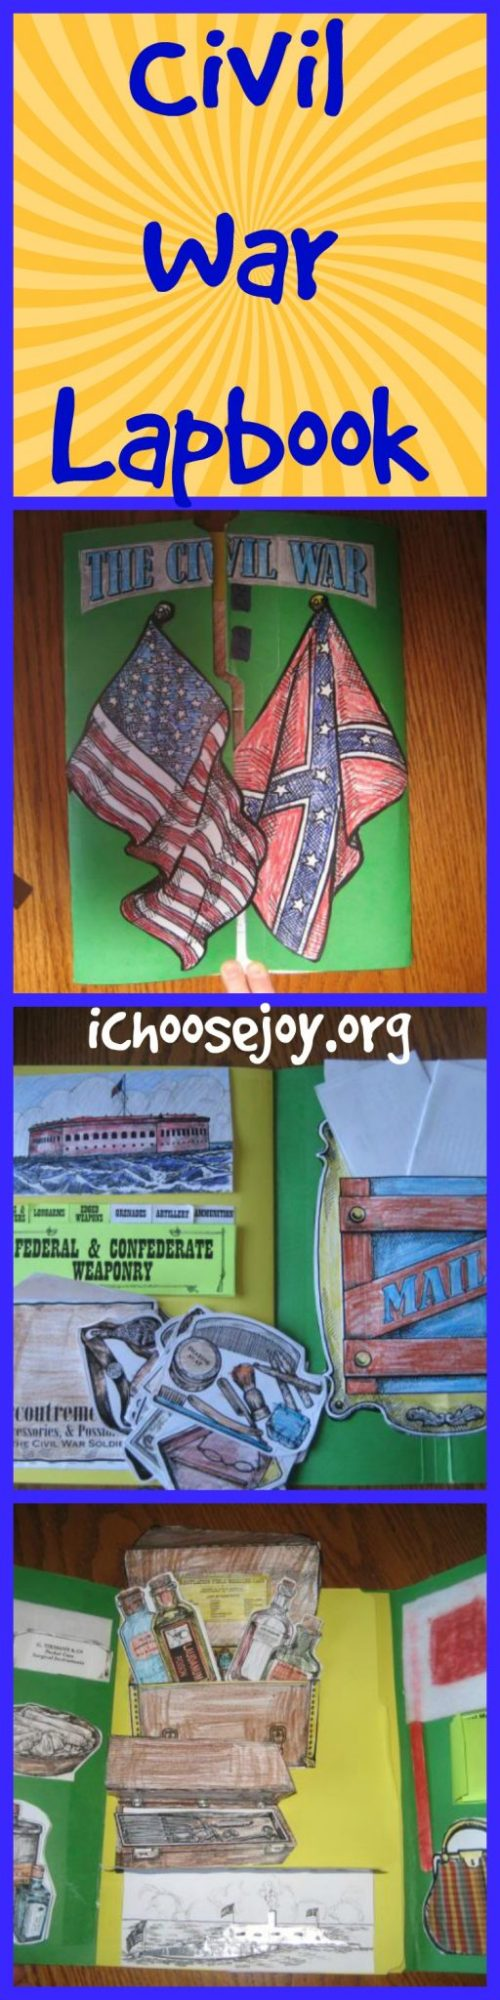 School projects from last year, including Civil War lapbook